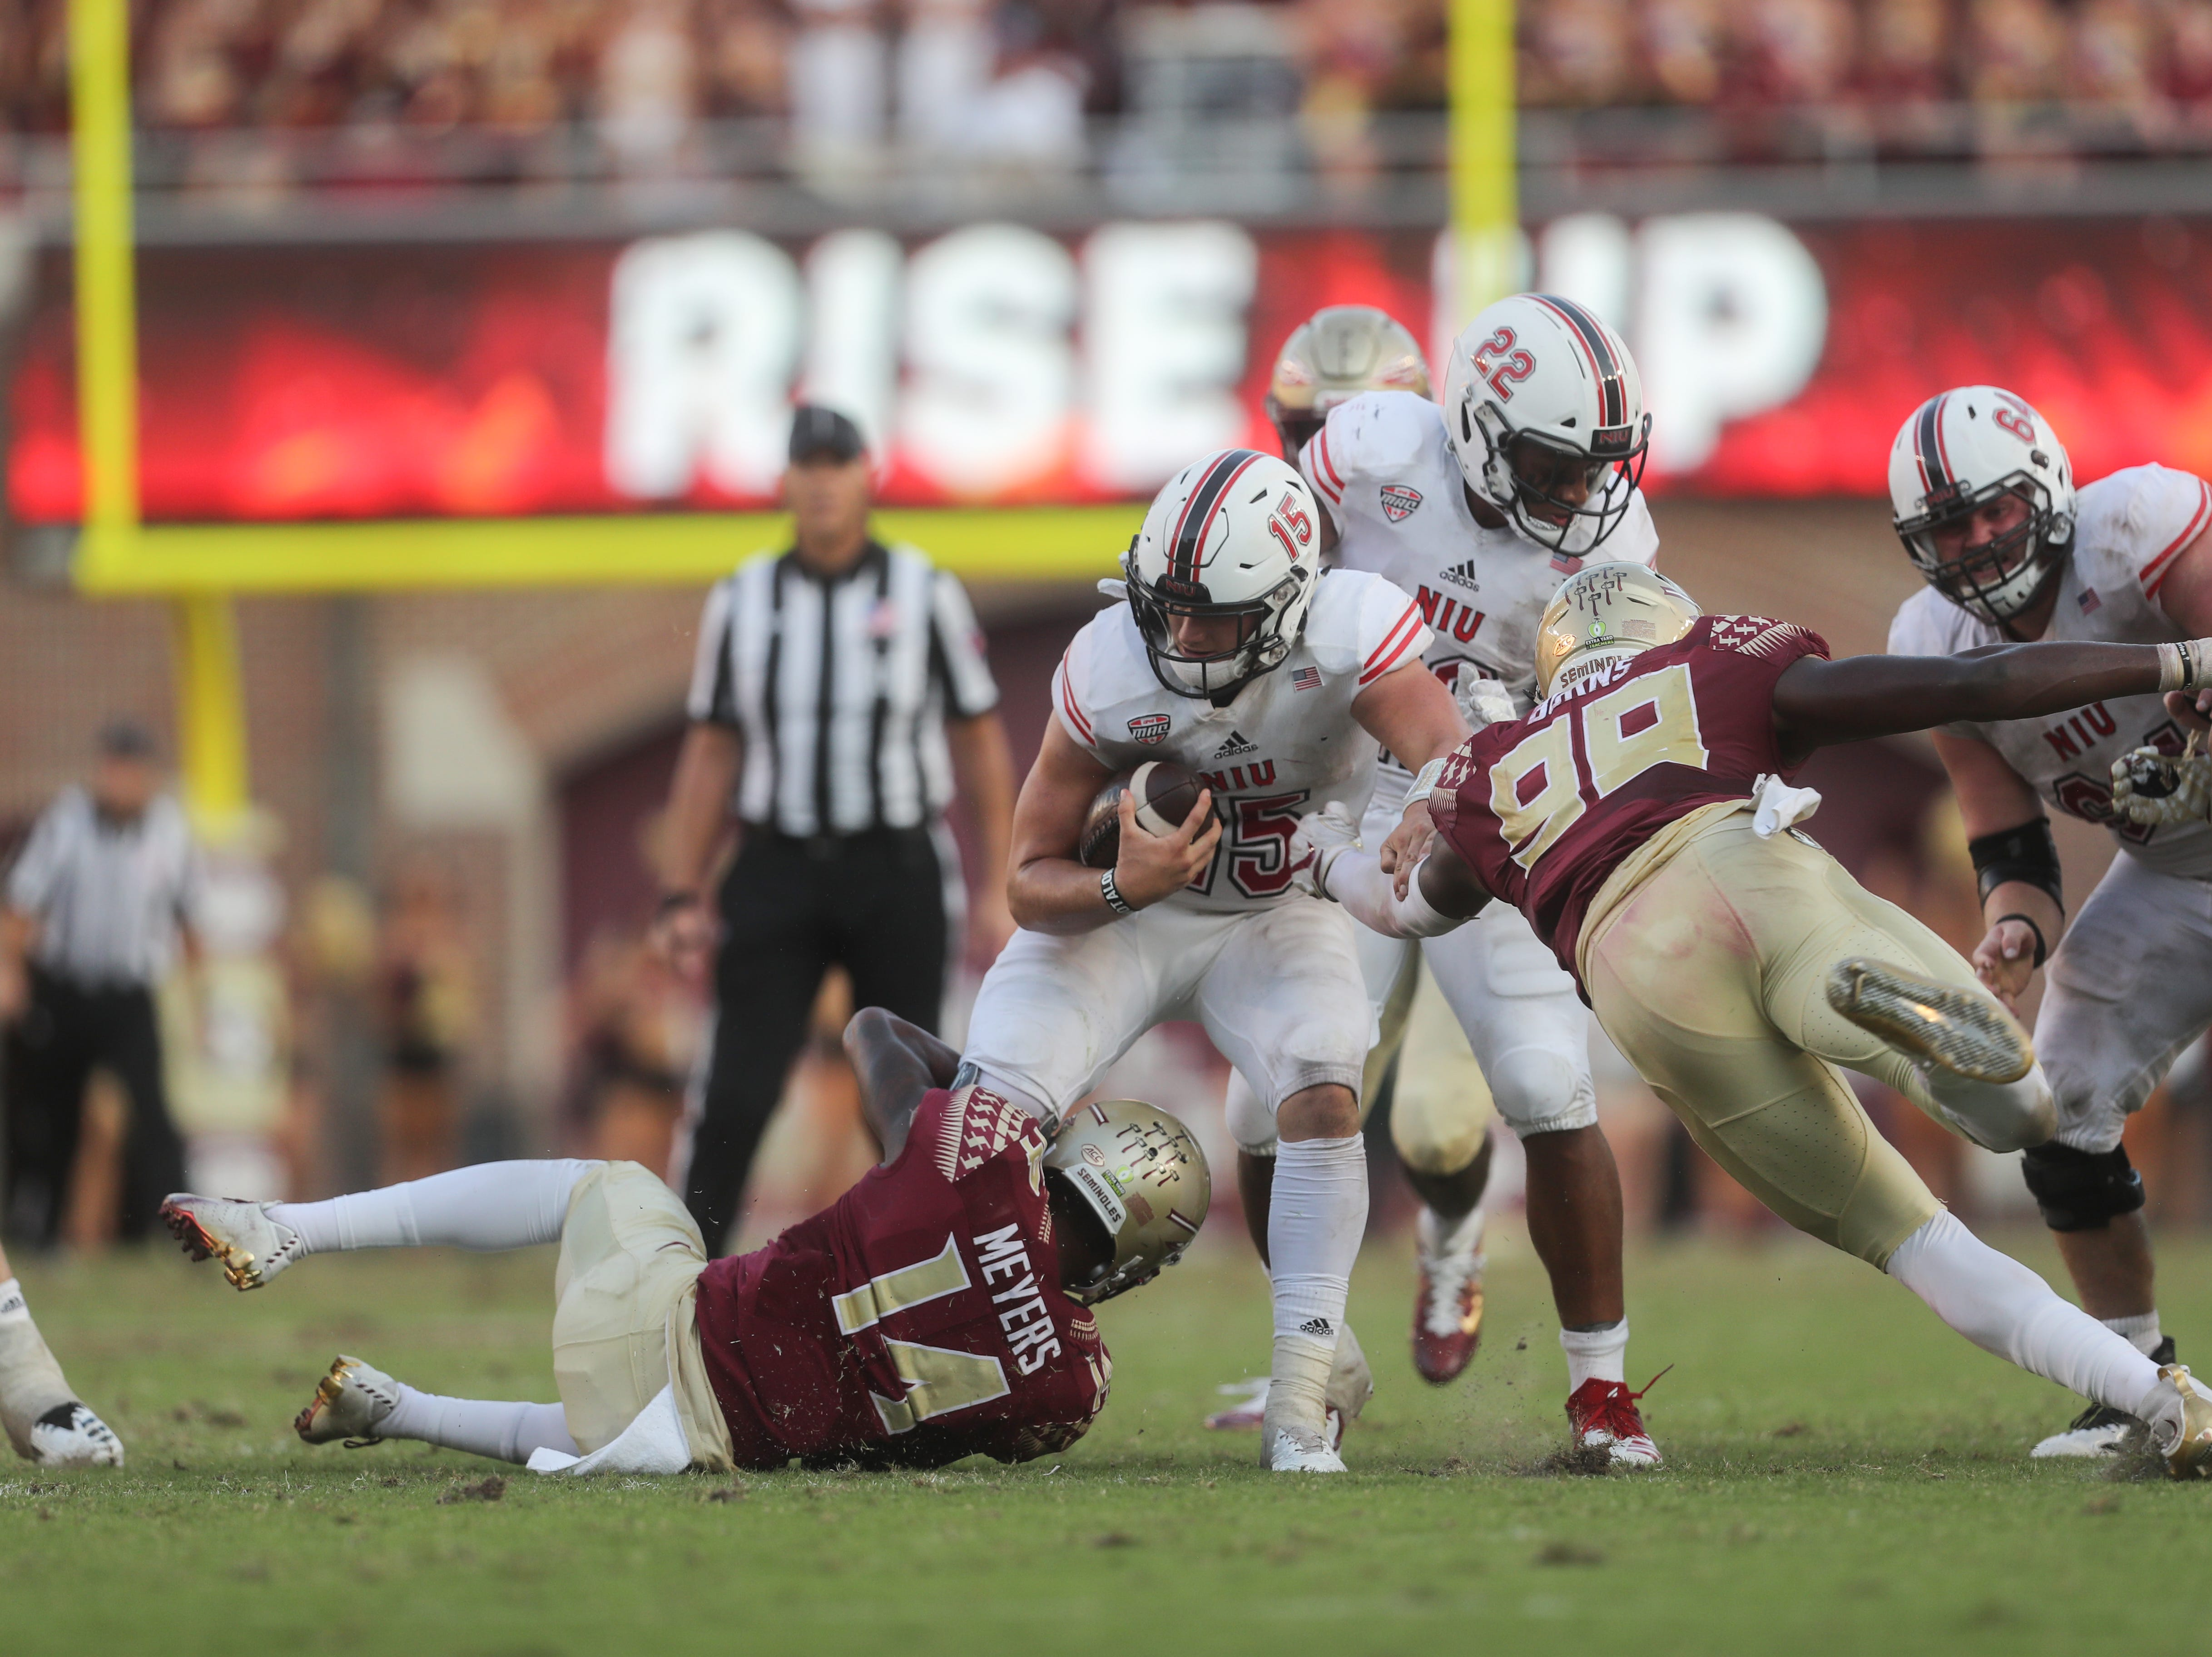 Northern Illinois Huskies quarterback Marcus Childers (15) is surrounded by Seminoles during a game between the Florida State University Seminoles and the Northern Illinois University Huskies at Doak S. Campbell Stadium in Tallahassee, Fla. Saturday, September 22, 2018.